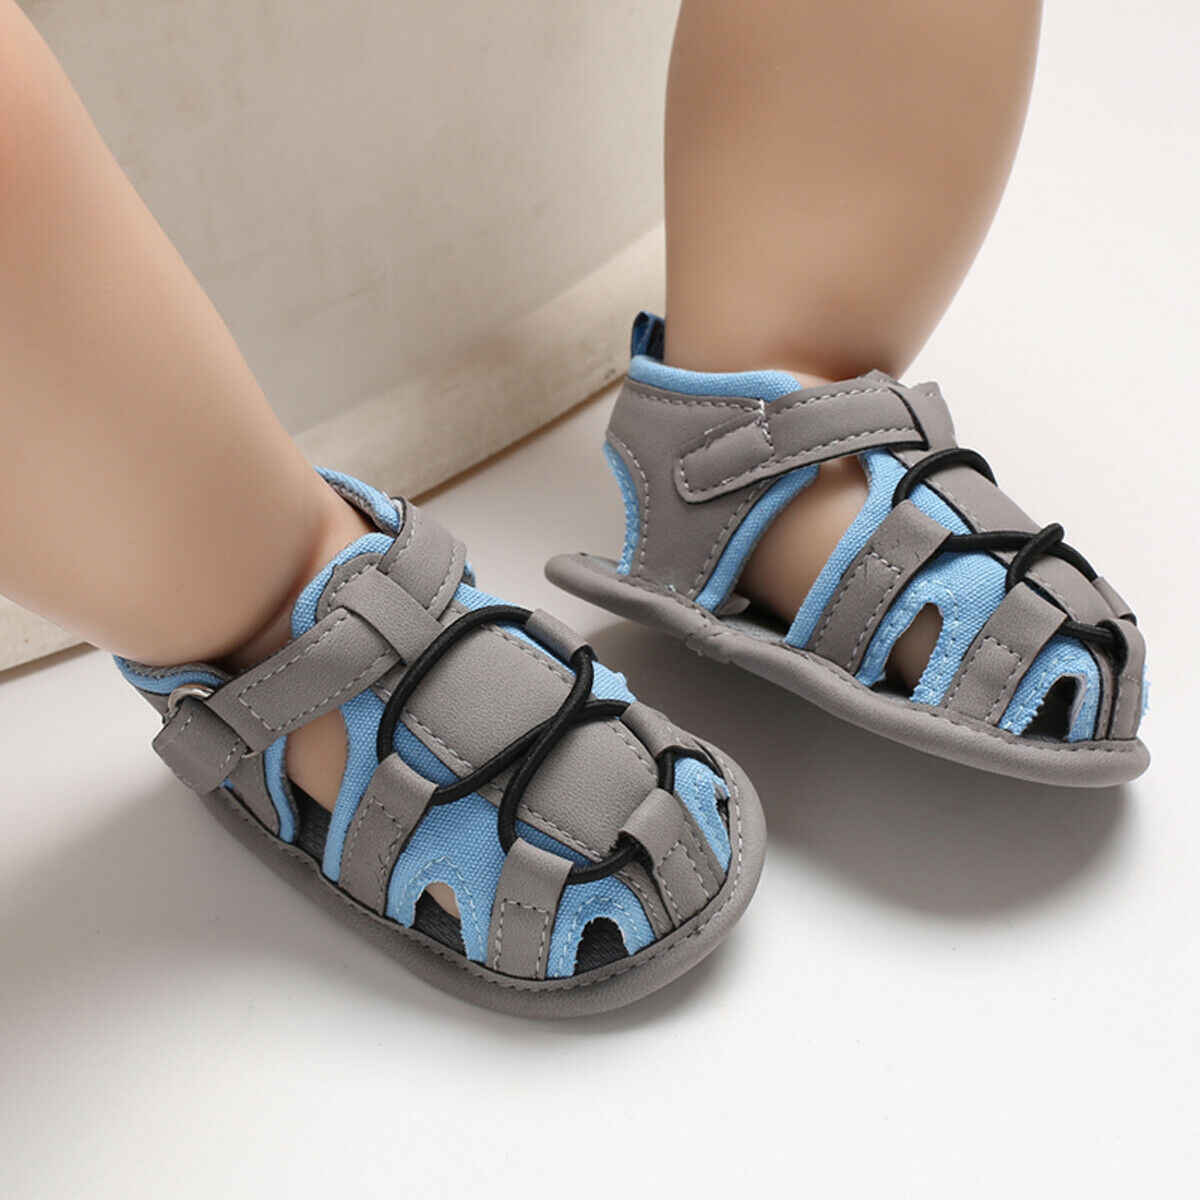 Fashion Baby Infant Kid Summer Girl Boys Sandal Shoes Soft Sole Crib Toddler Kids Sandals Shoes